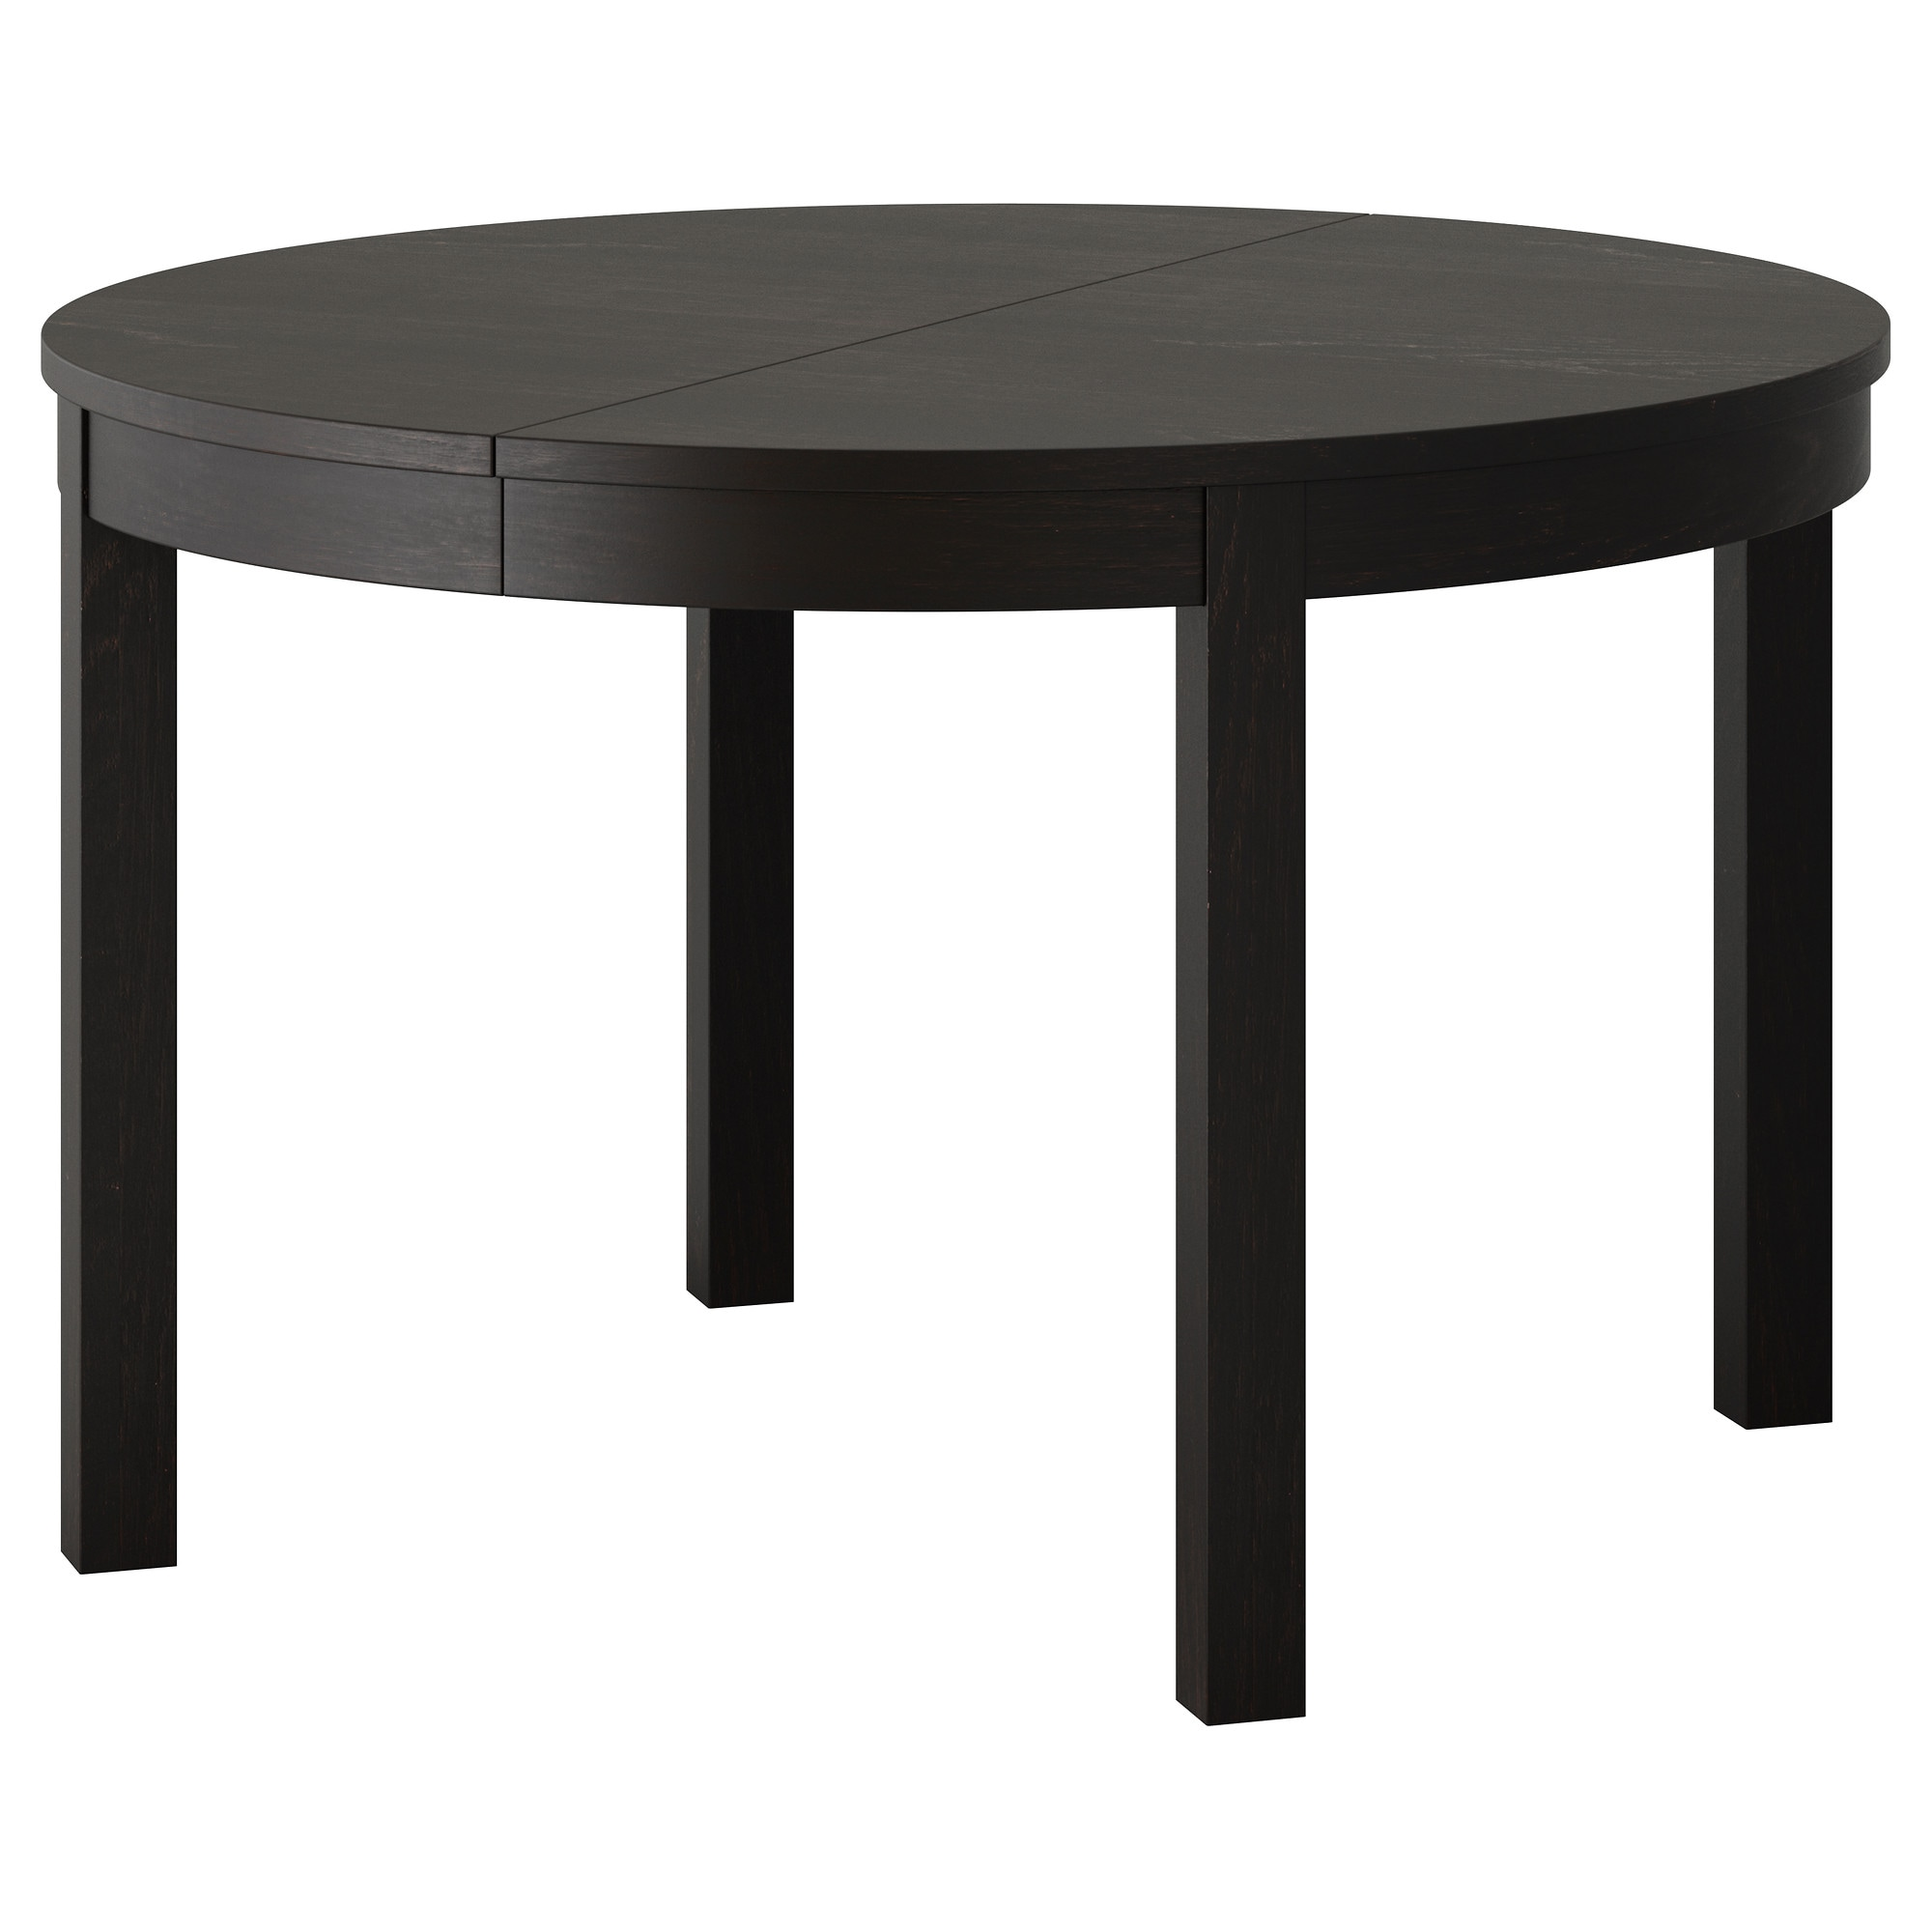 Round Dining Table bjursta extendable table - brown - ikea